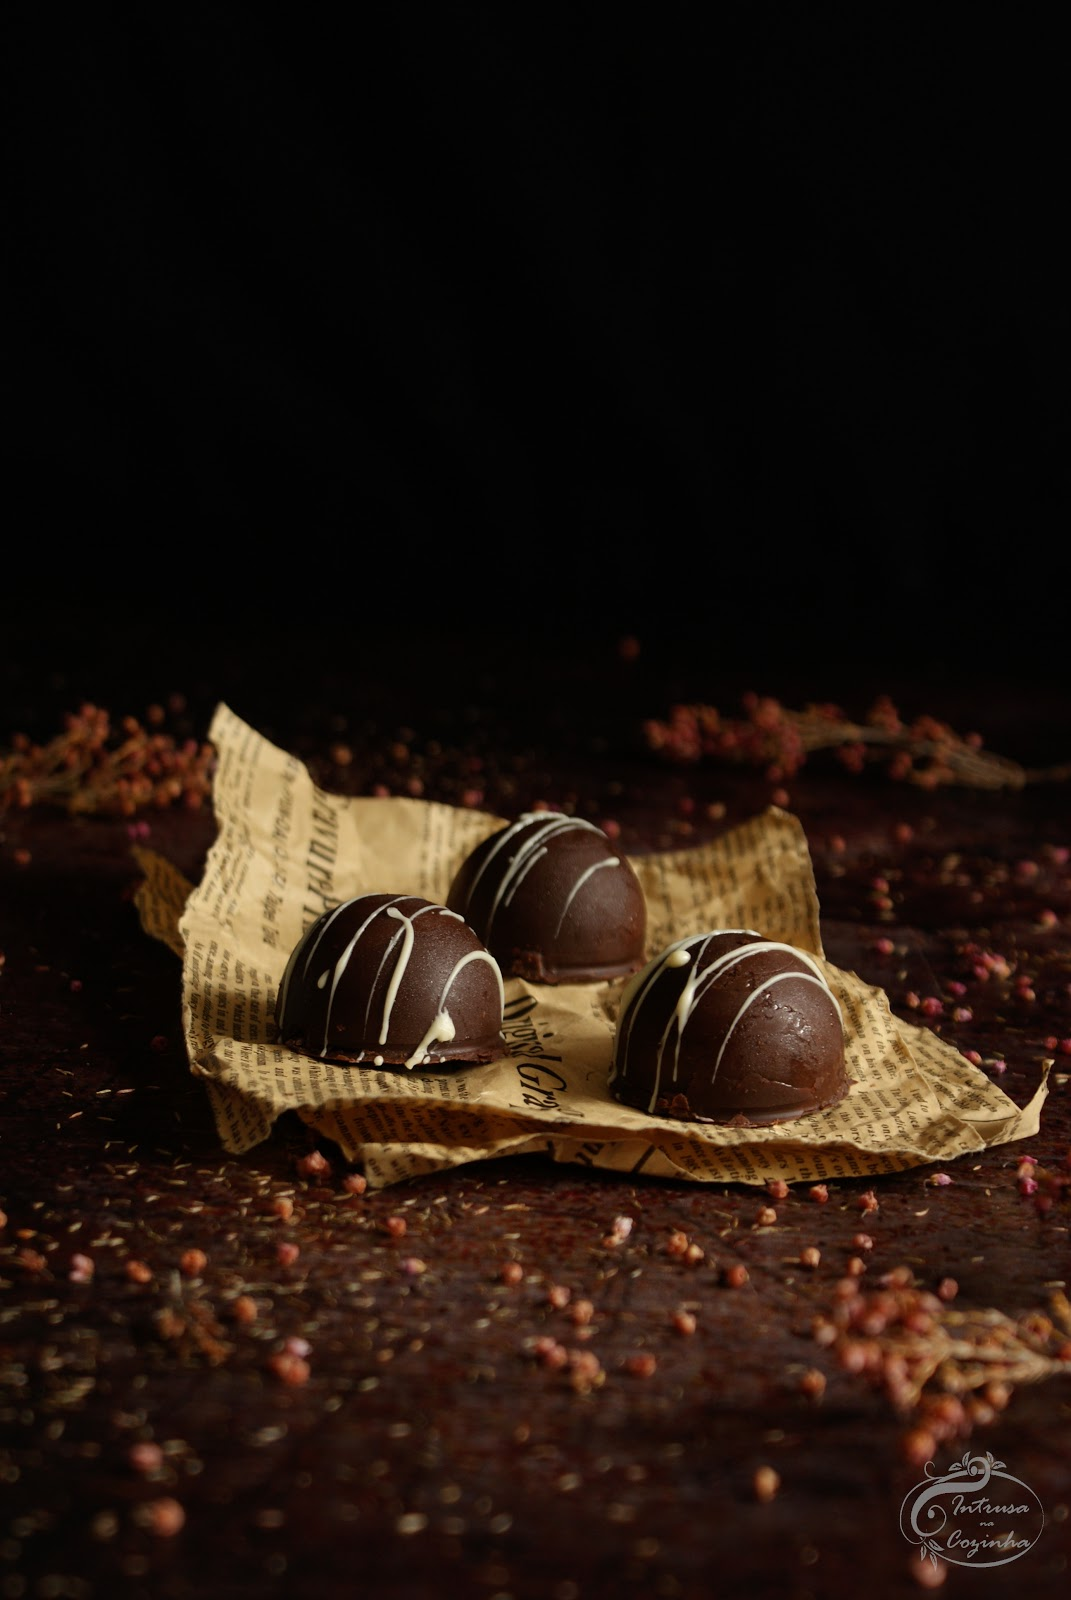 Bombons de Chocolate e Mousse de Framboesa  {Chocolate and Raspberry Mousse Candy}